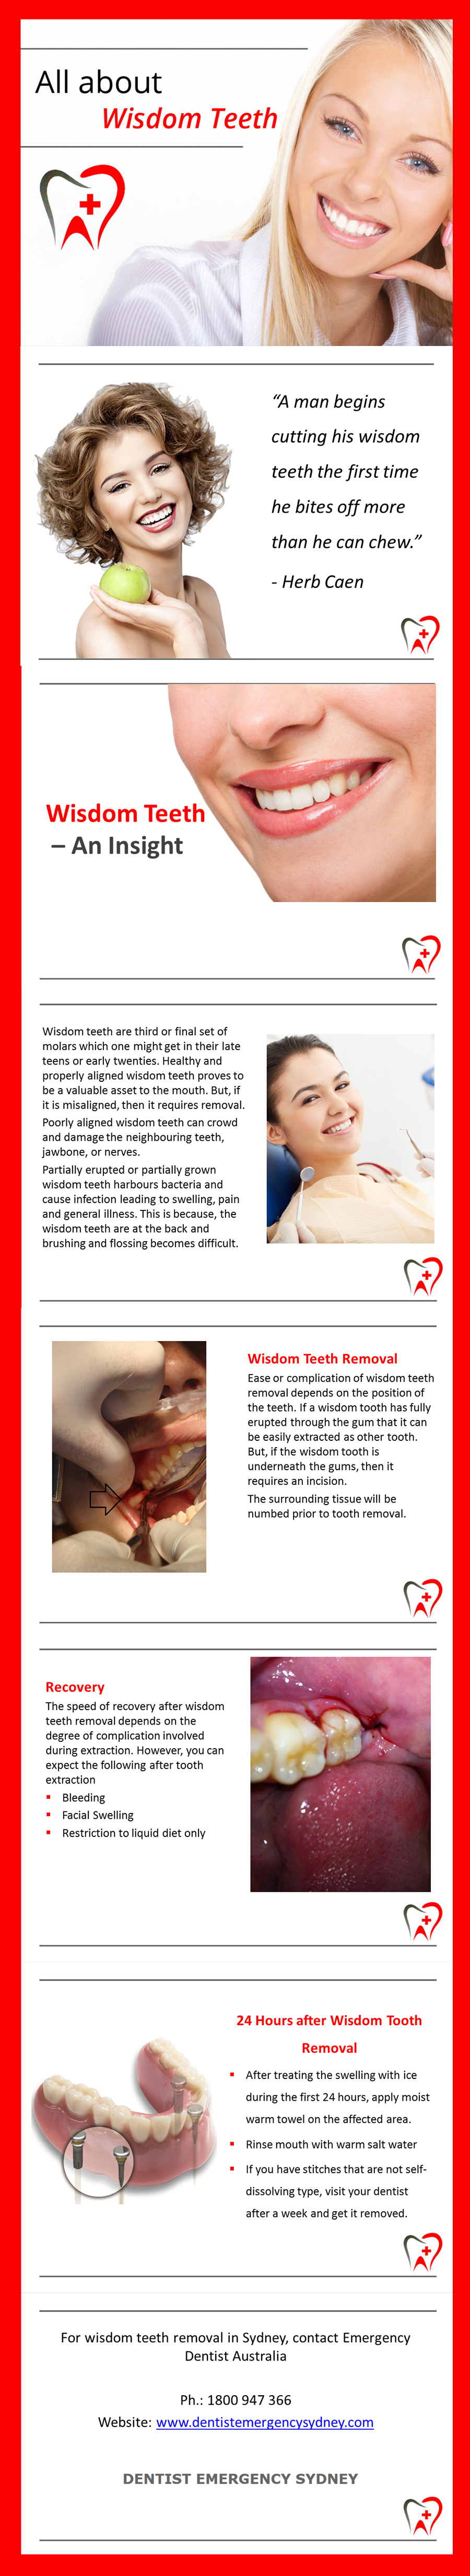 About Wisdom Teeth Removal Wisdom teeth needs to be